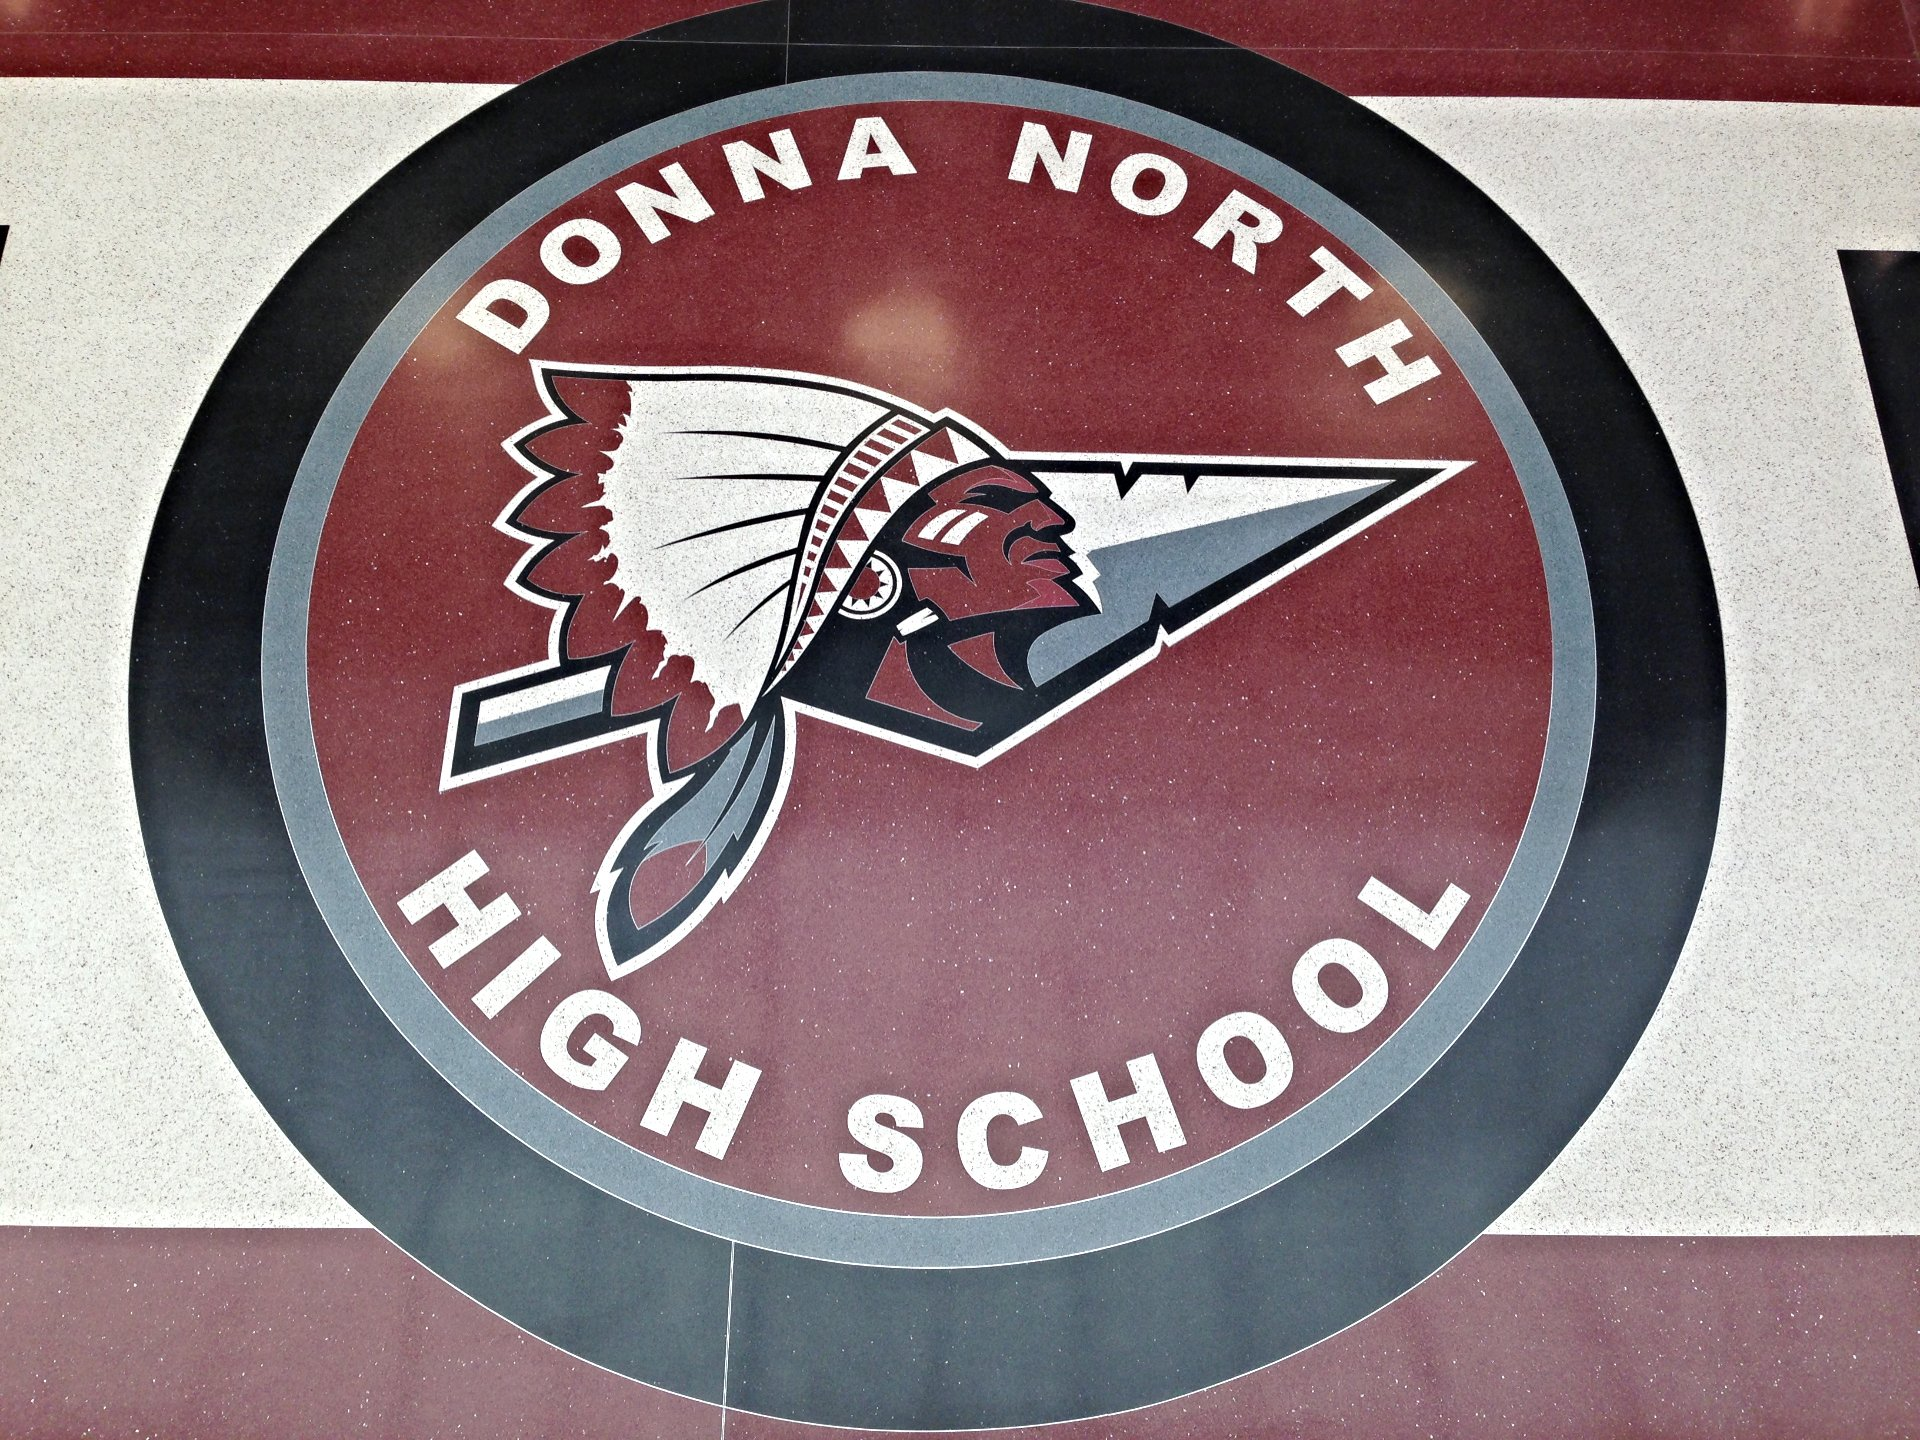 Donna North High School